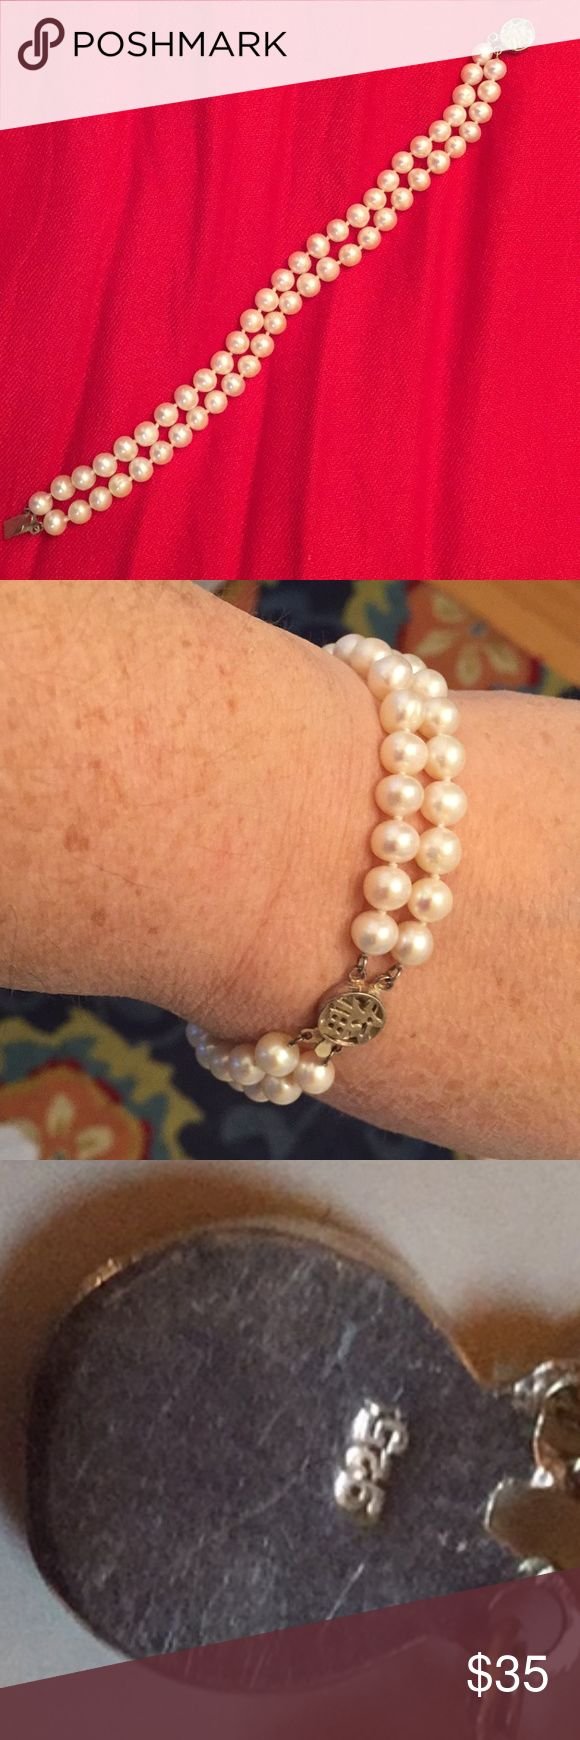 DOUBLE WHITE FRESHWATER PEARL BRACELET - 8 INCH!!! 8 INCH FRESHWATER PEARL DOUBLE STRAND BRACELET WITH  STERLING SILVER BOX CLASP - MARKED 925   PEARLS ARE PRETTY WHITE  - NOT CREAM - NOT RIBBED  KNOTTED BETWEEN PEARLS  PEARLS MEASURE APPROXIMATELY 5-6mm SEE PHOTO Jewelry Bracelets